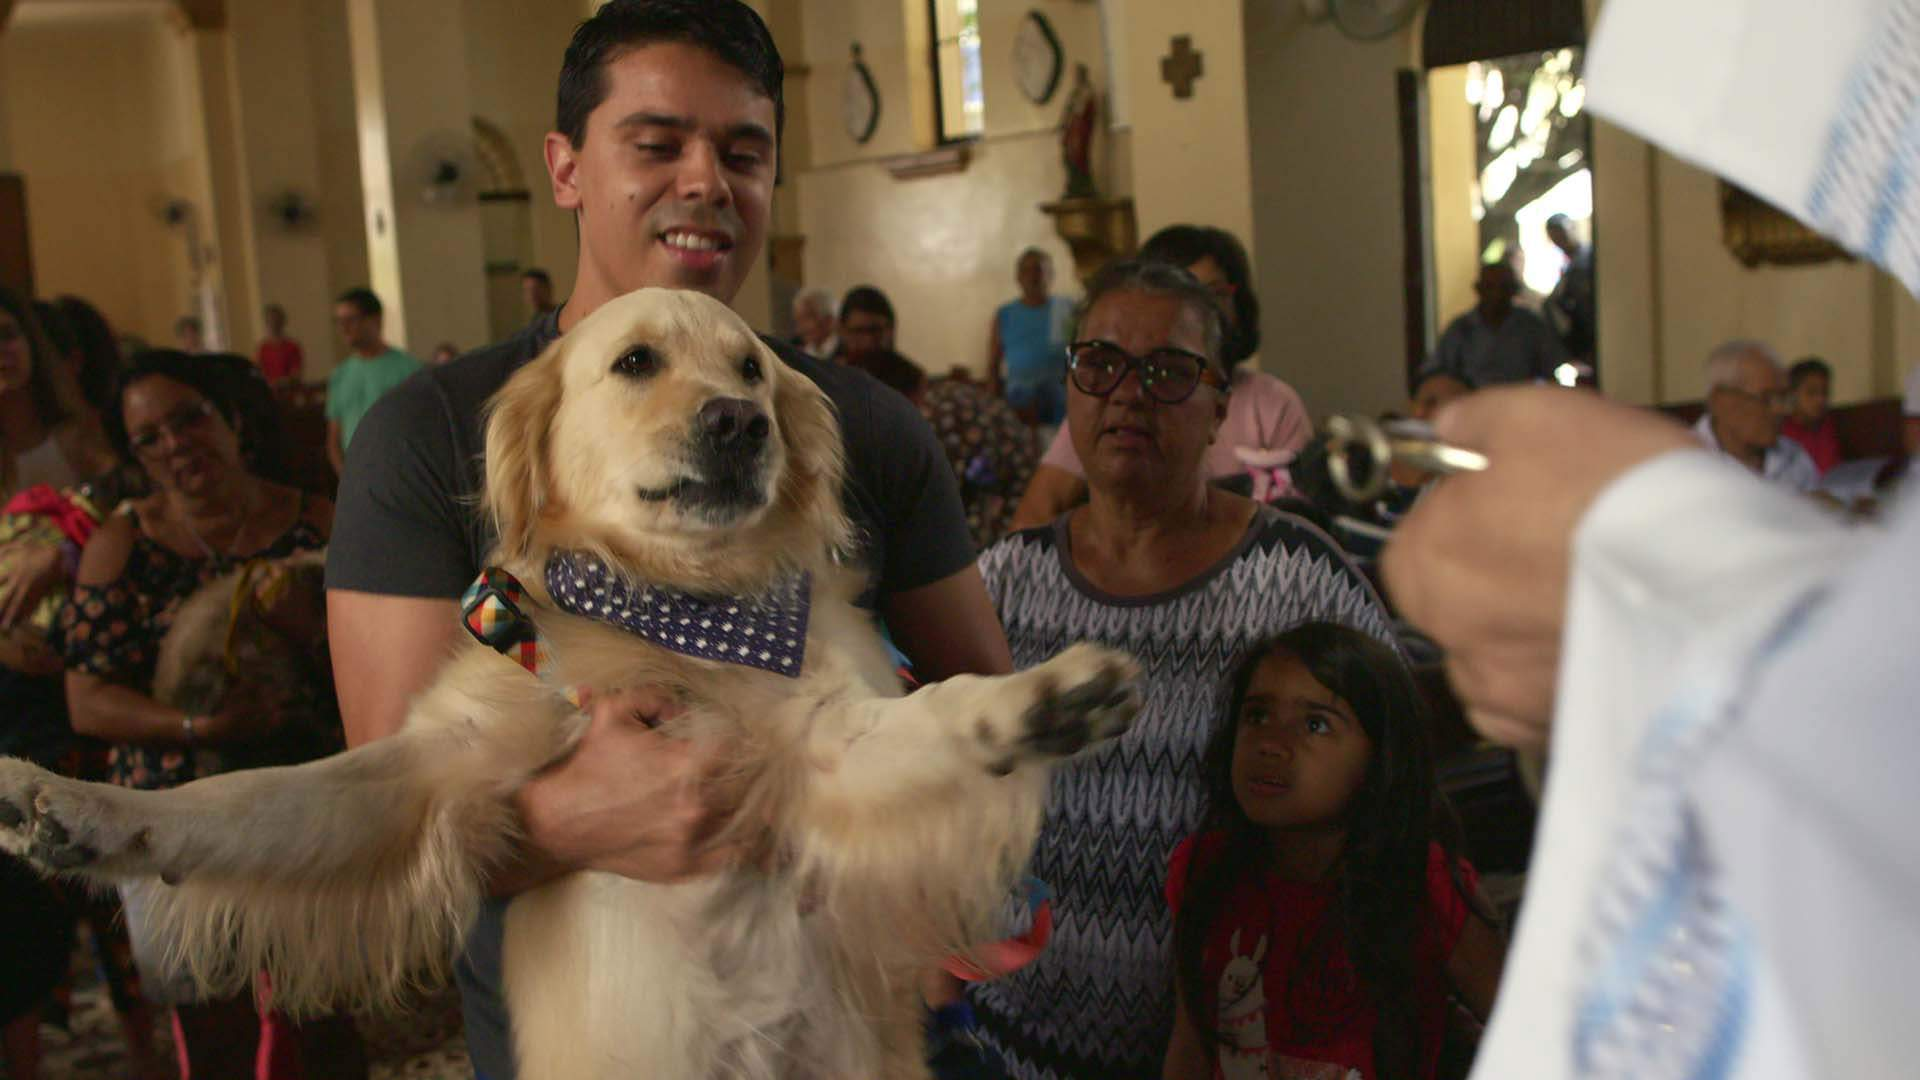 Netflix's Adorable 'Dogs' Docuseries Is Returning for a Second Season This July